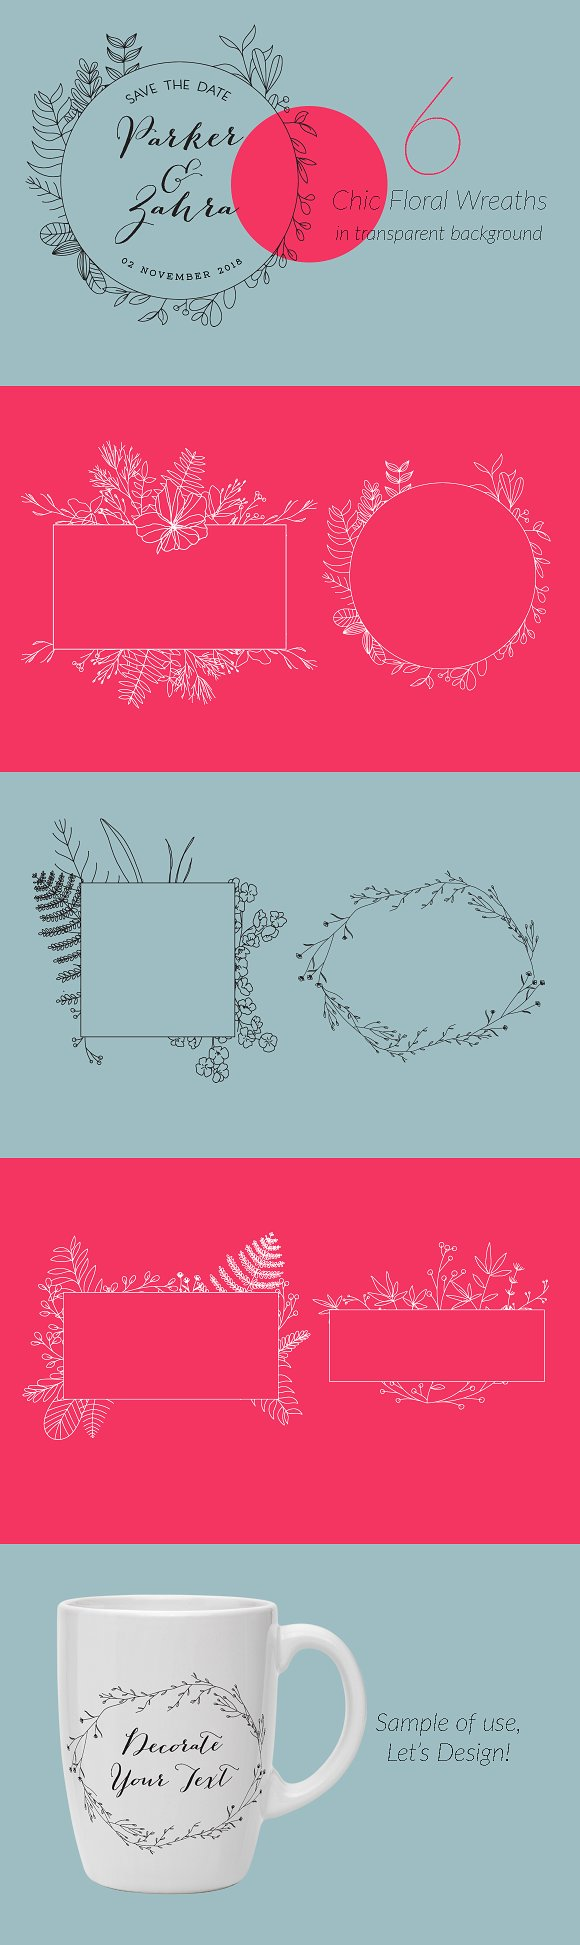 6 Chic Floral Wreaths Frame